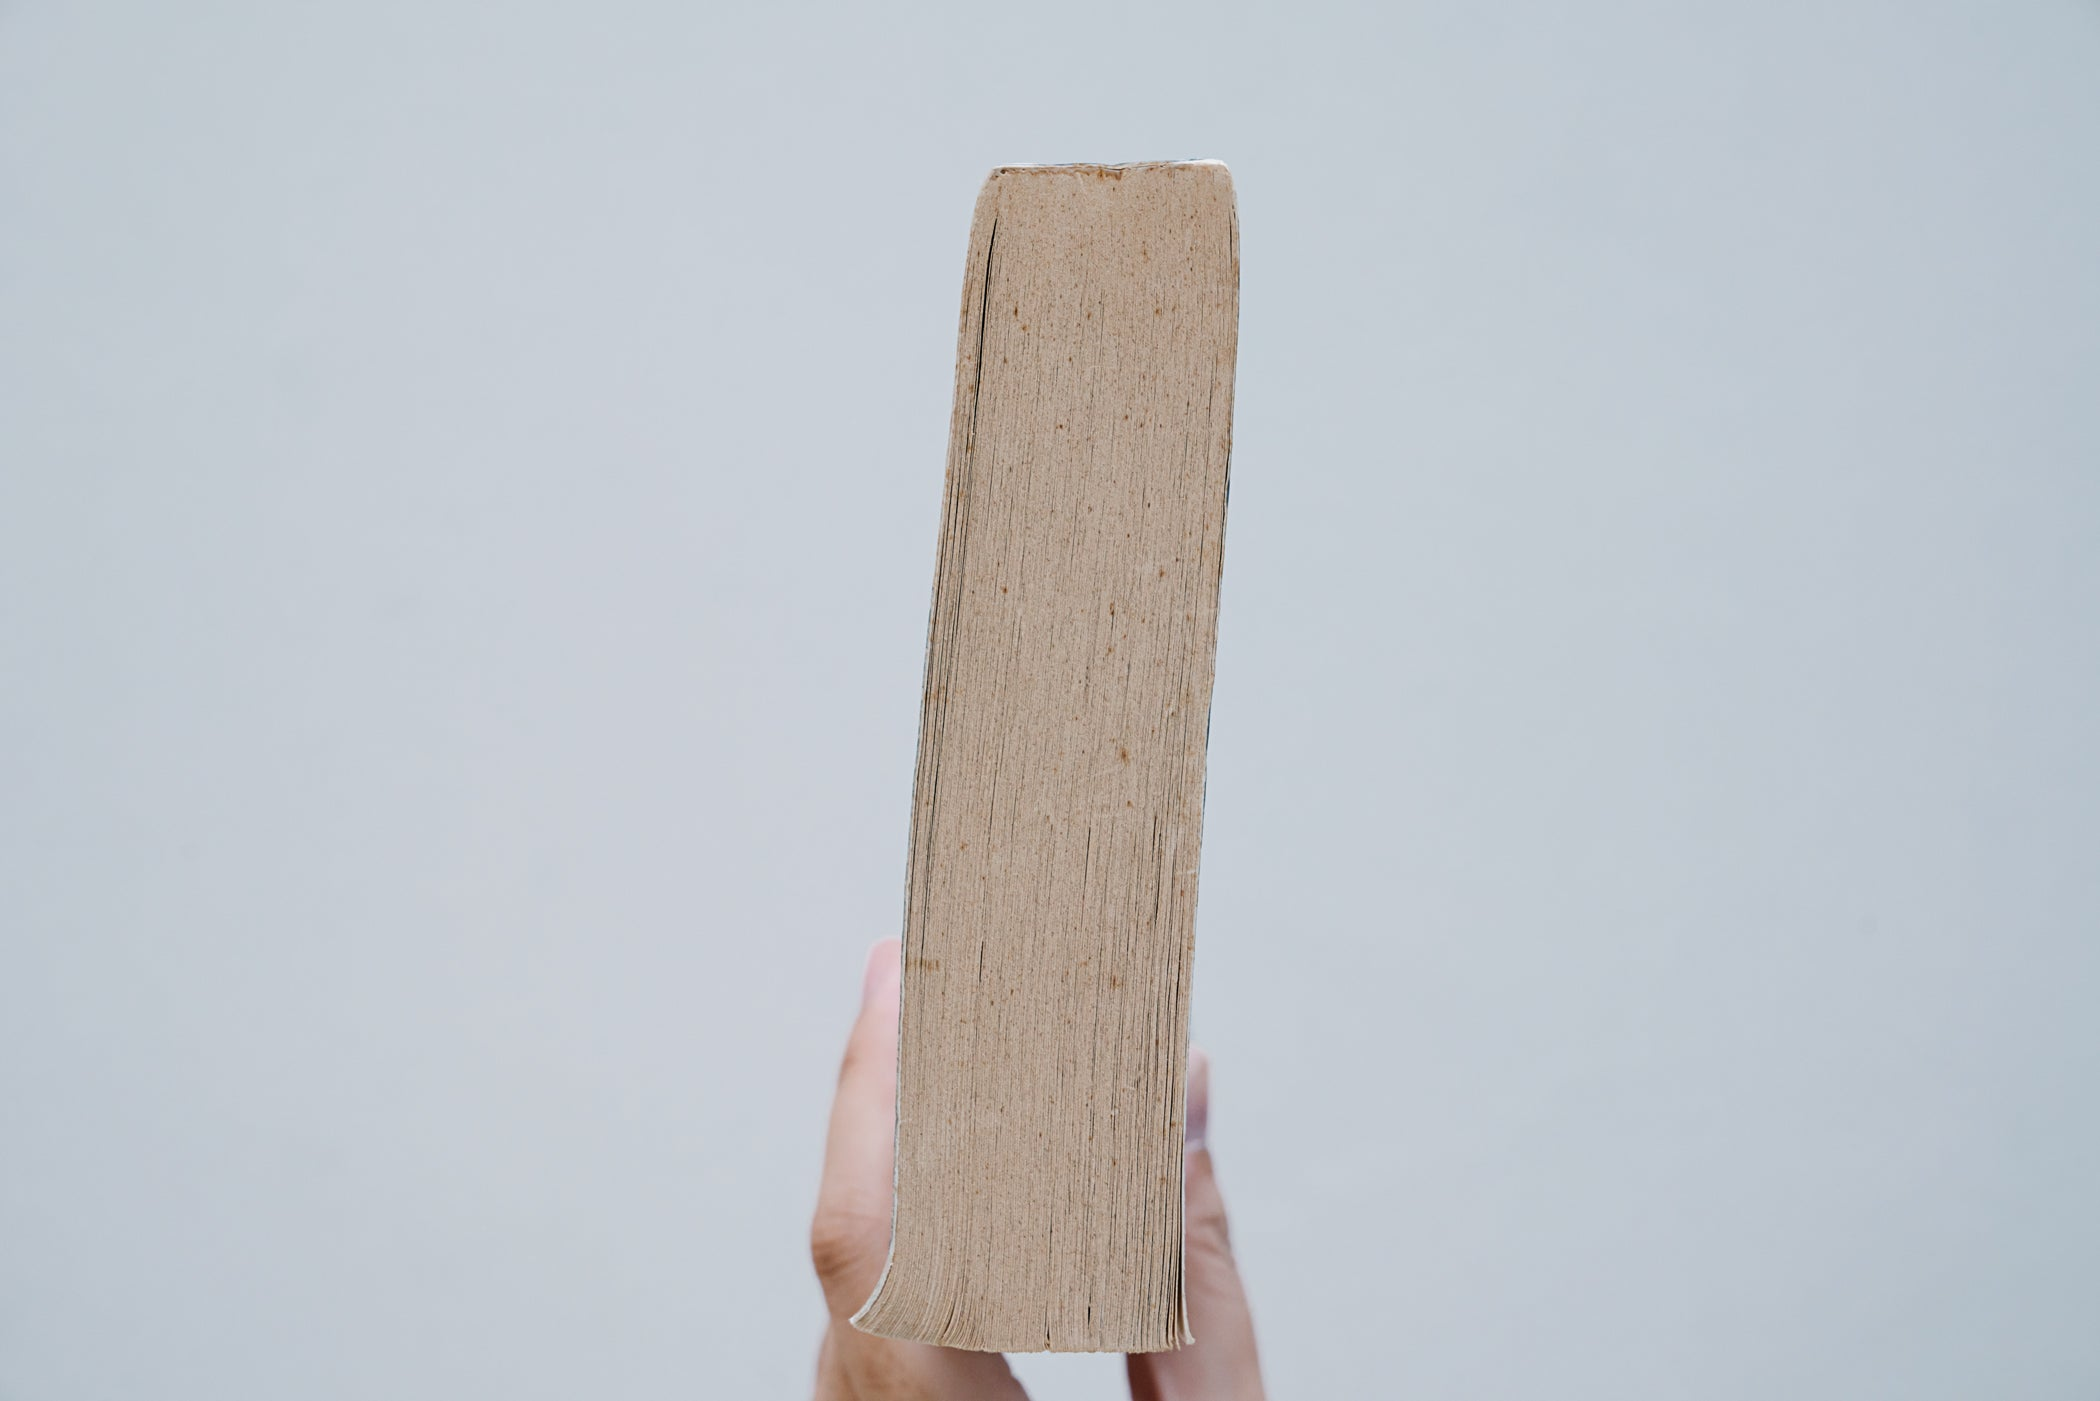 Edges of book in Very Good condition